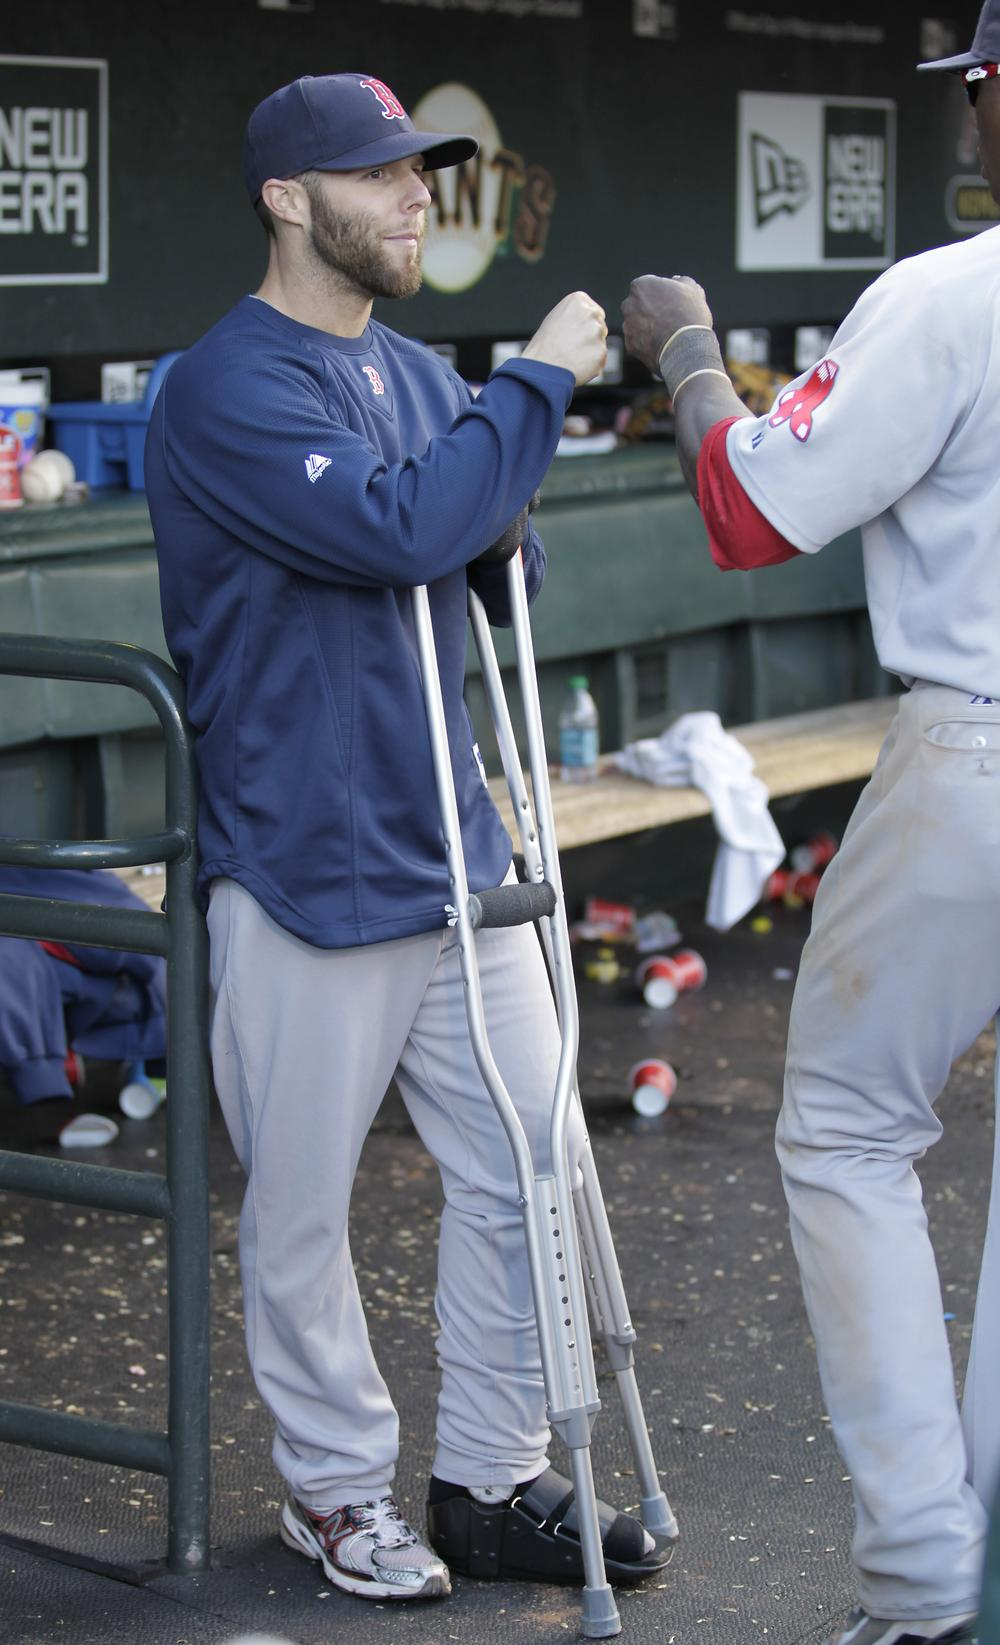 Dustin Pedroia, left, is seen in the dugout on crutches congratulating teammates after a 4-2 victory against the San Francisco Giants on Saturday. (AP)